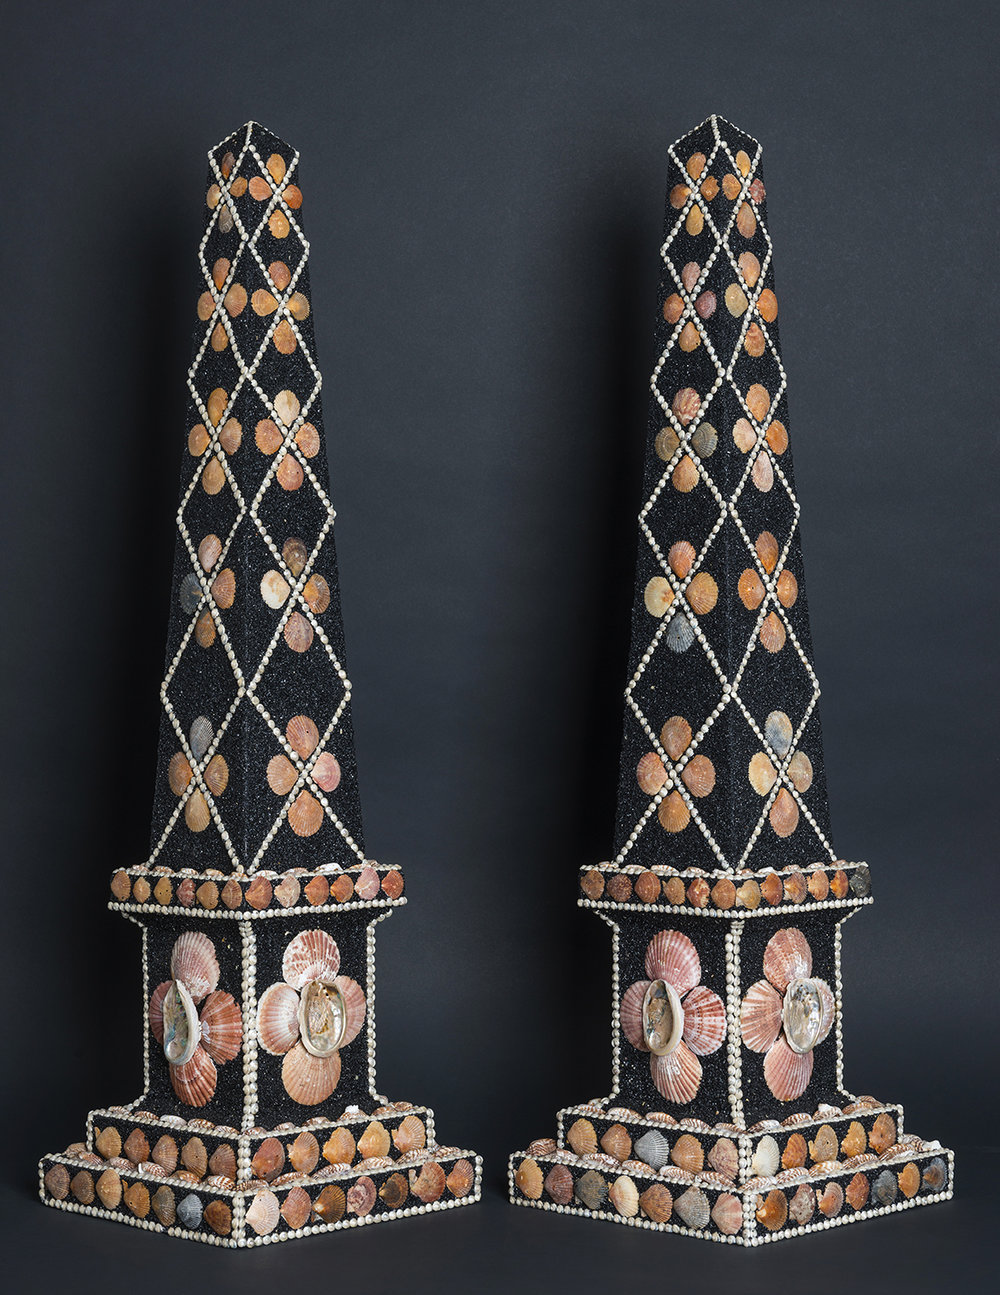 A dramatic pair of obelisks embellished with abalones and scallop shells set on a background of crushed anthracite. 82 x 23 x 23 cm